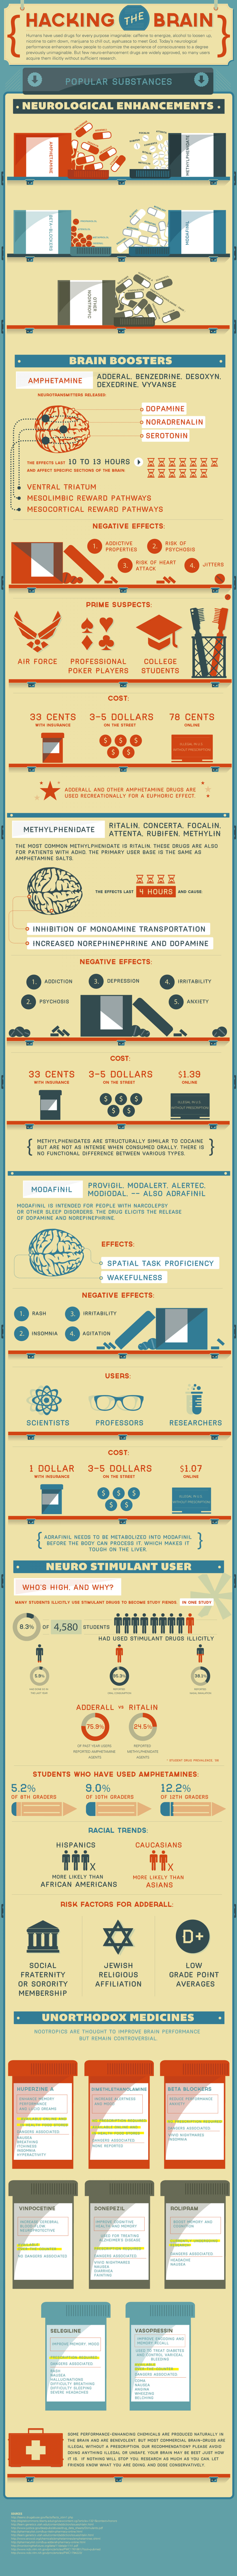 Hacking the Brain Infographic